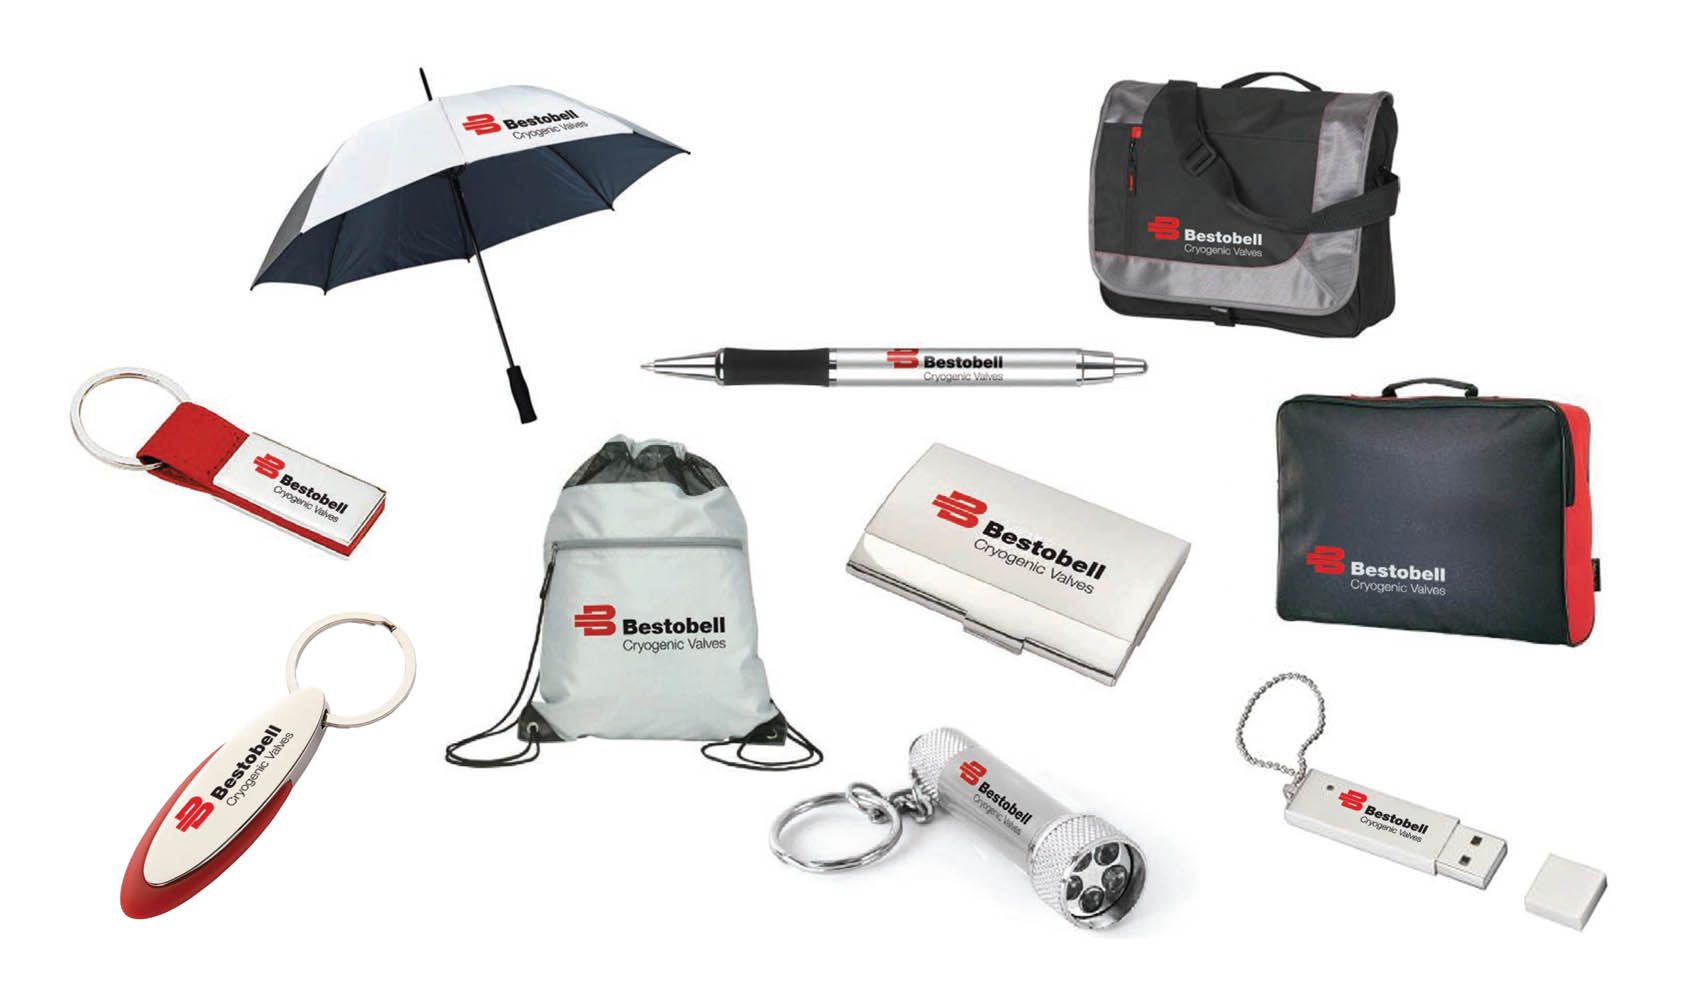 Promotional Products - New York City, NYC, Manhattan, The Bronx, Brooklyn, Queens, Staten Island, New York, NY